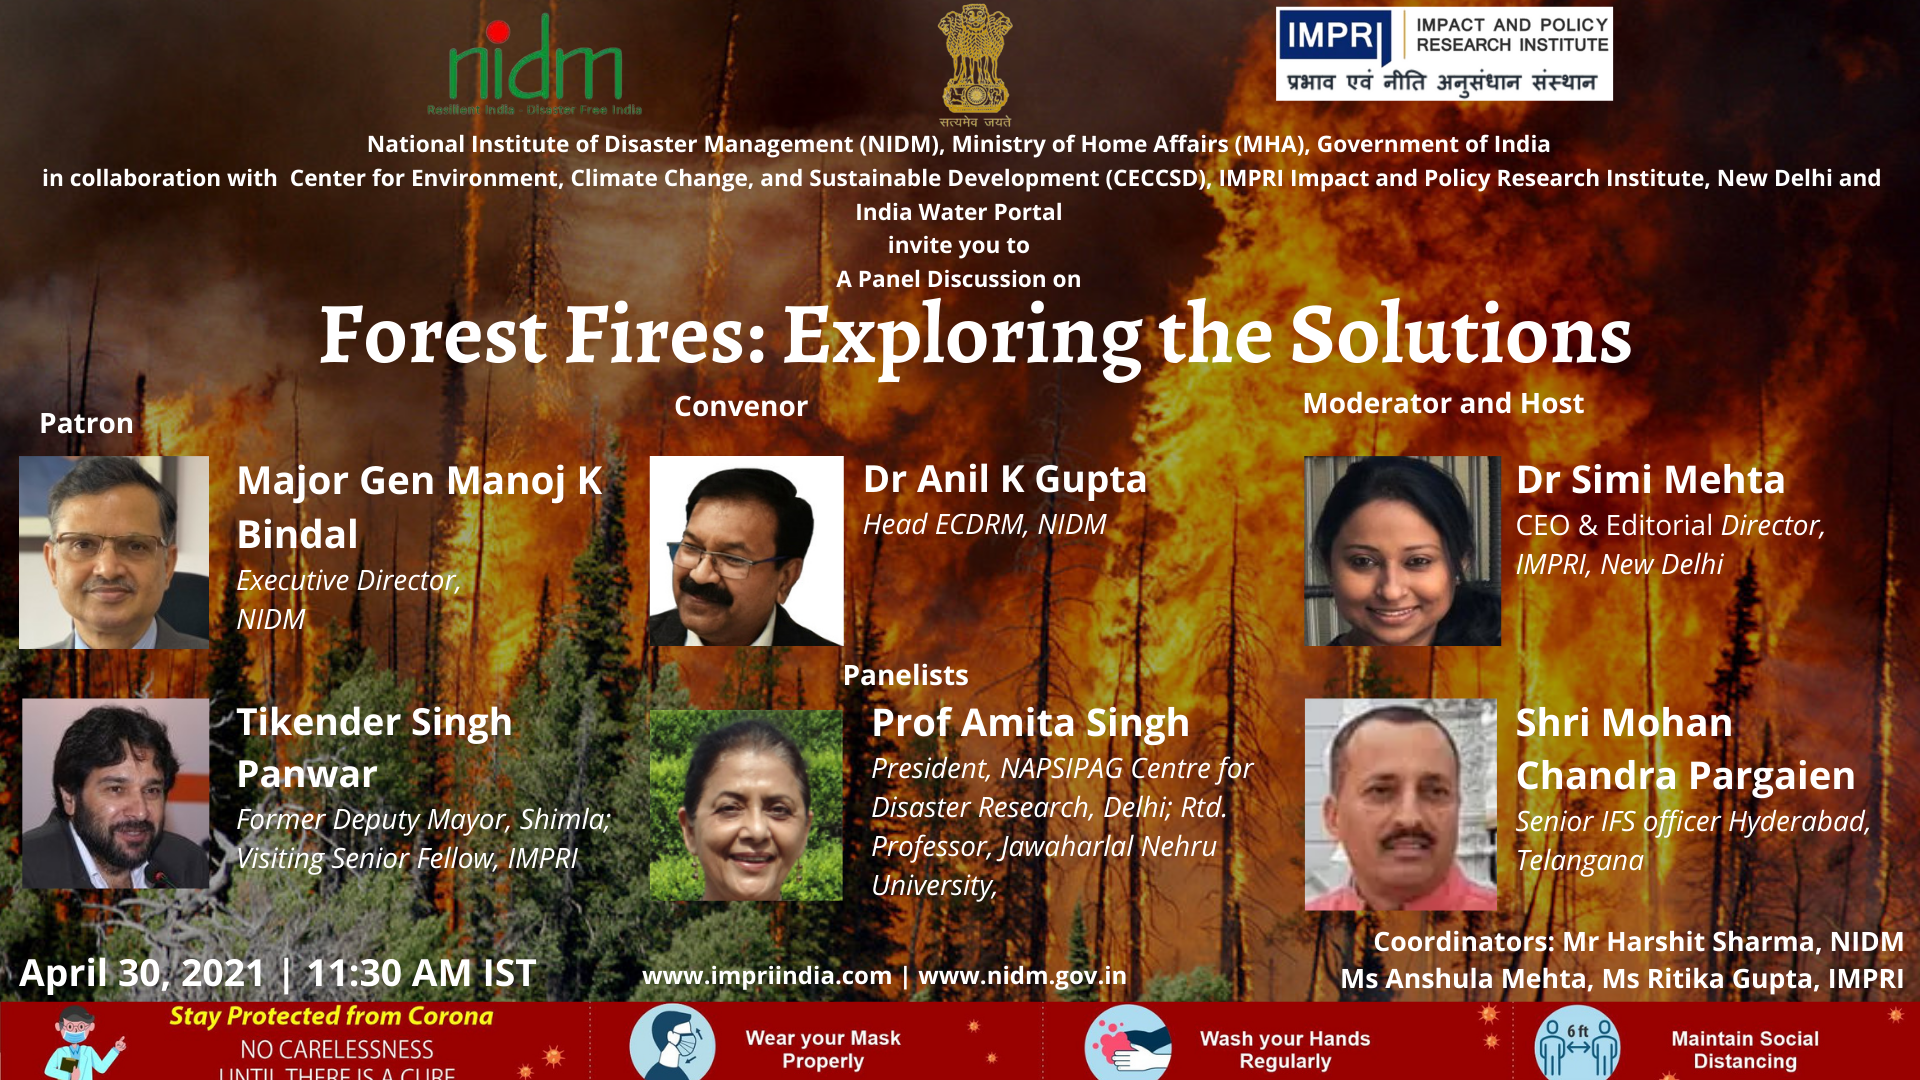 Forest Fires: Exploring the Solutions